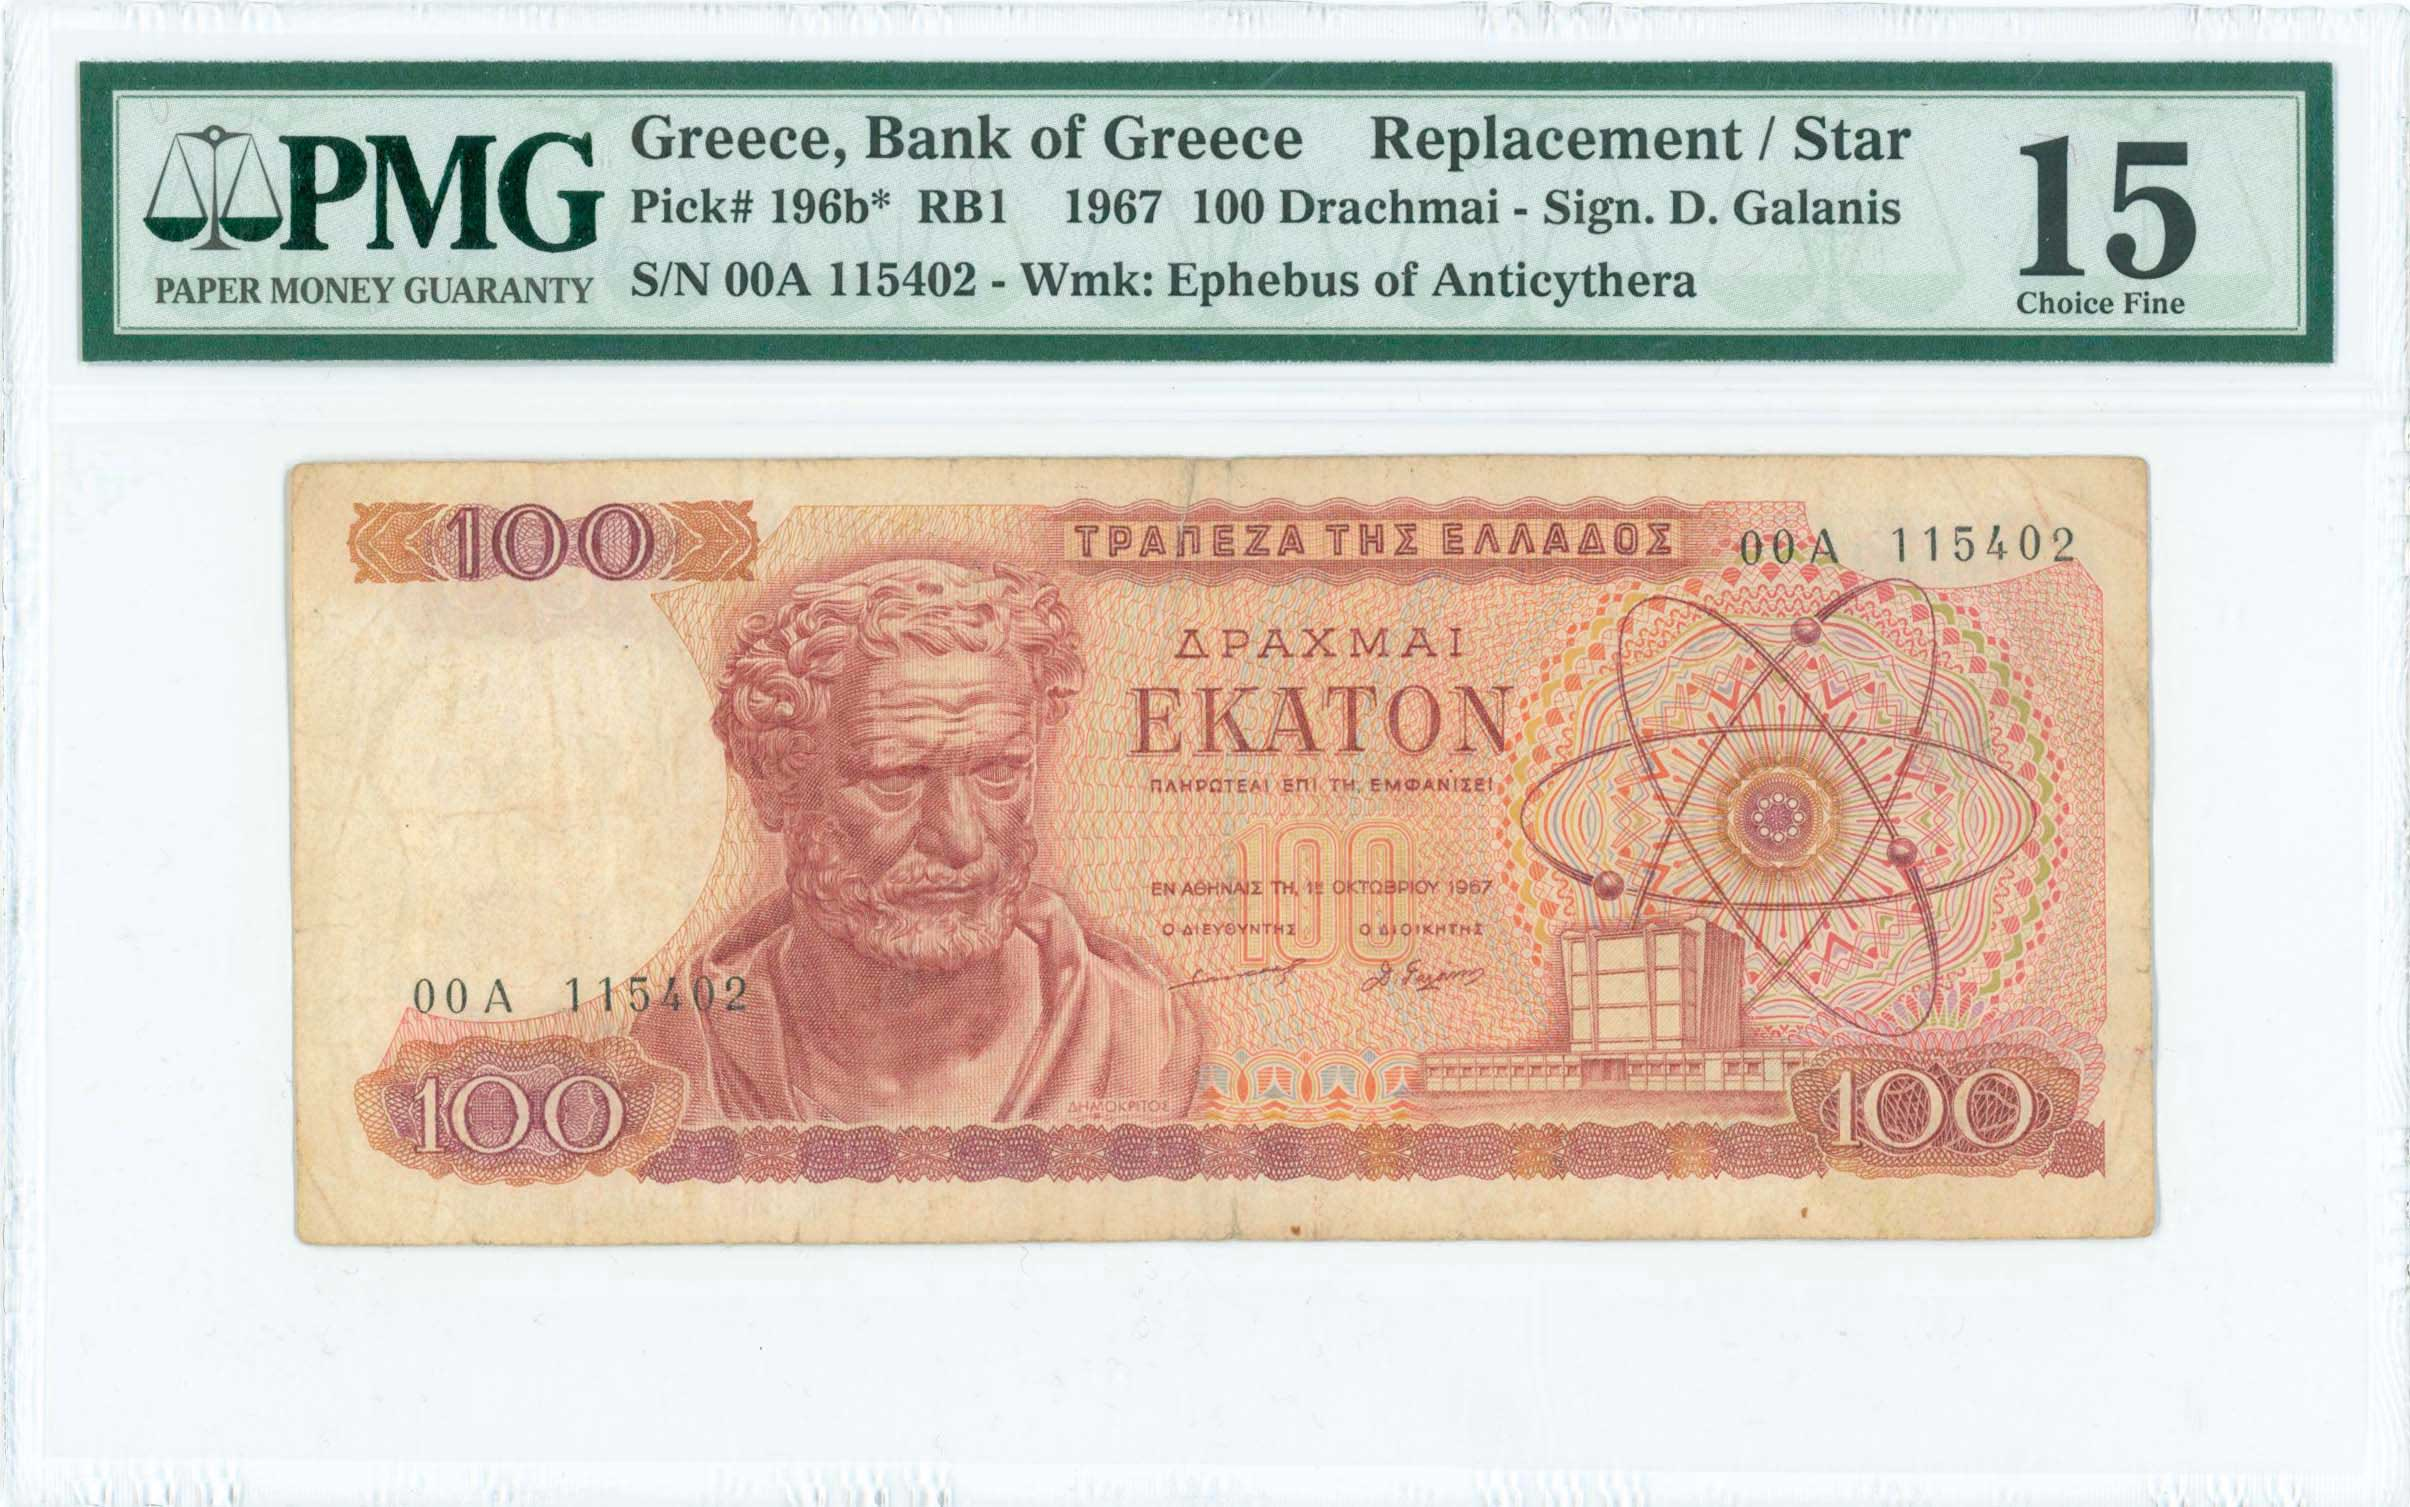 Lot 6599 - -  PAPER MONEY - BANKNOTES BANK OF GREECE AFTER WWII -  A. Karamitsos Public & Live Internet Auction 671 (Part A)